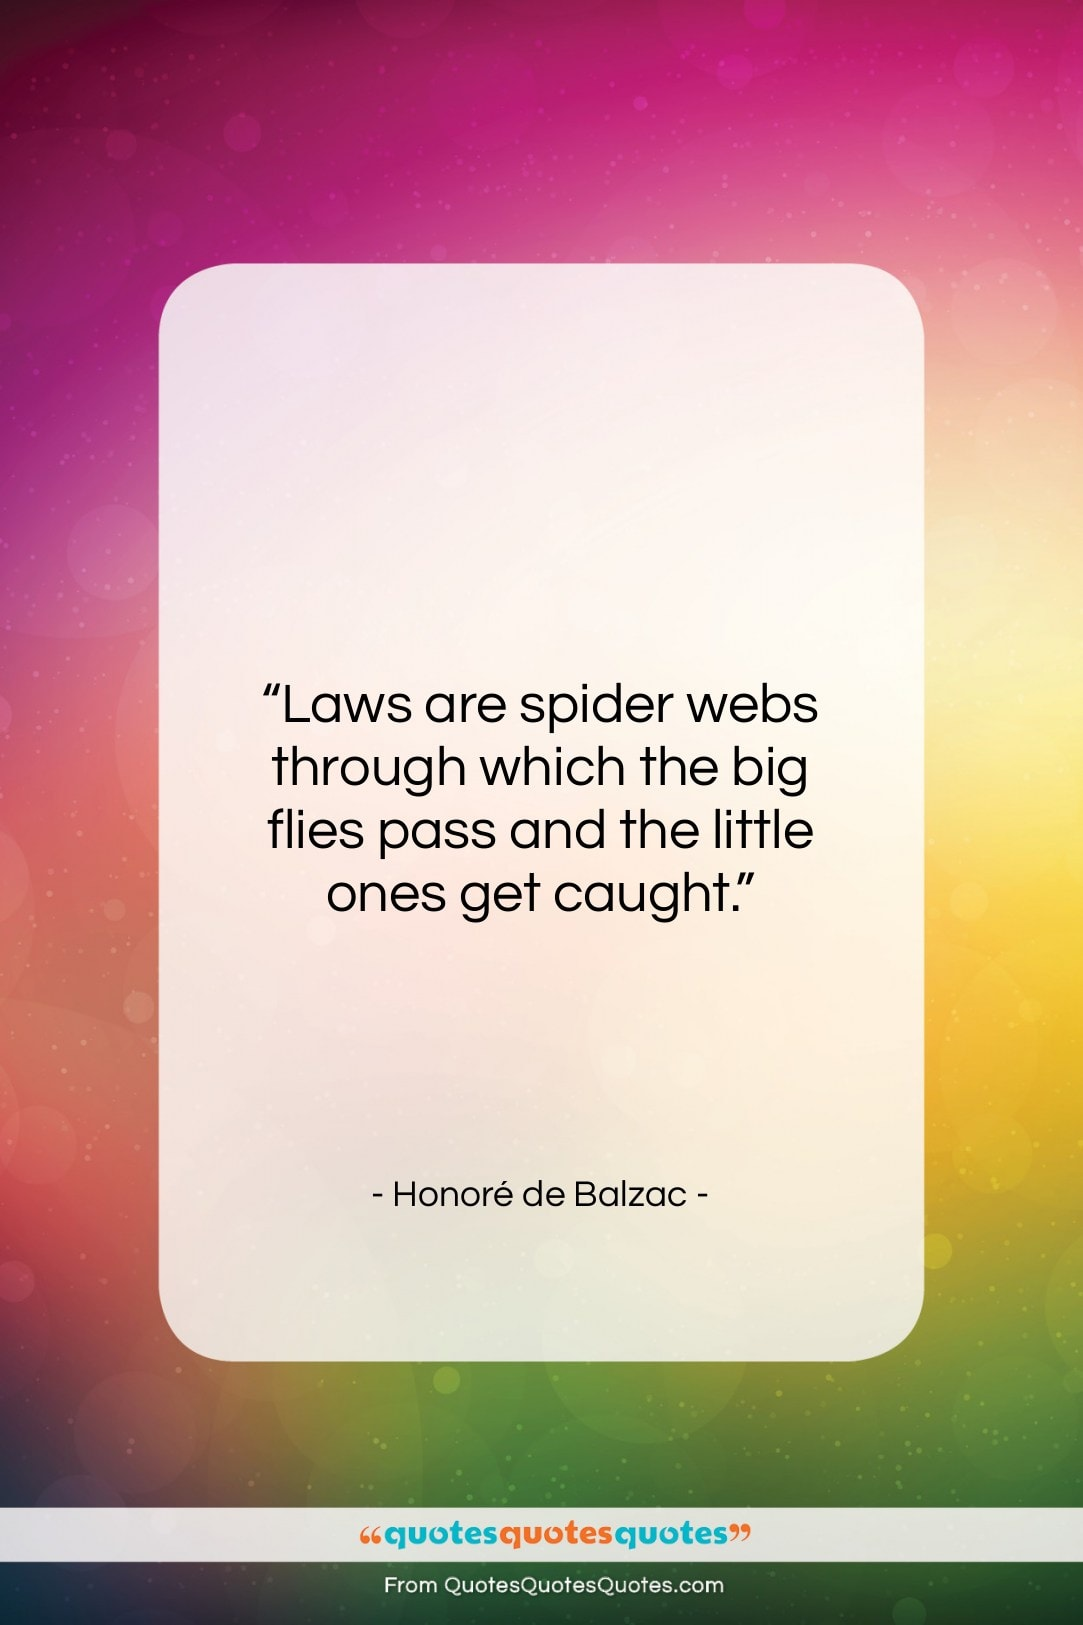 """Honoré de Balzac quote: """"Laws are spider webs through which the…""""- at QuotesQuotesQuotes.com"""